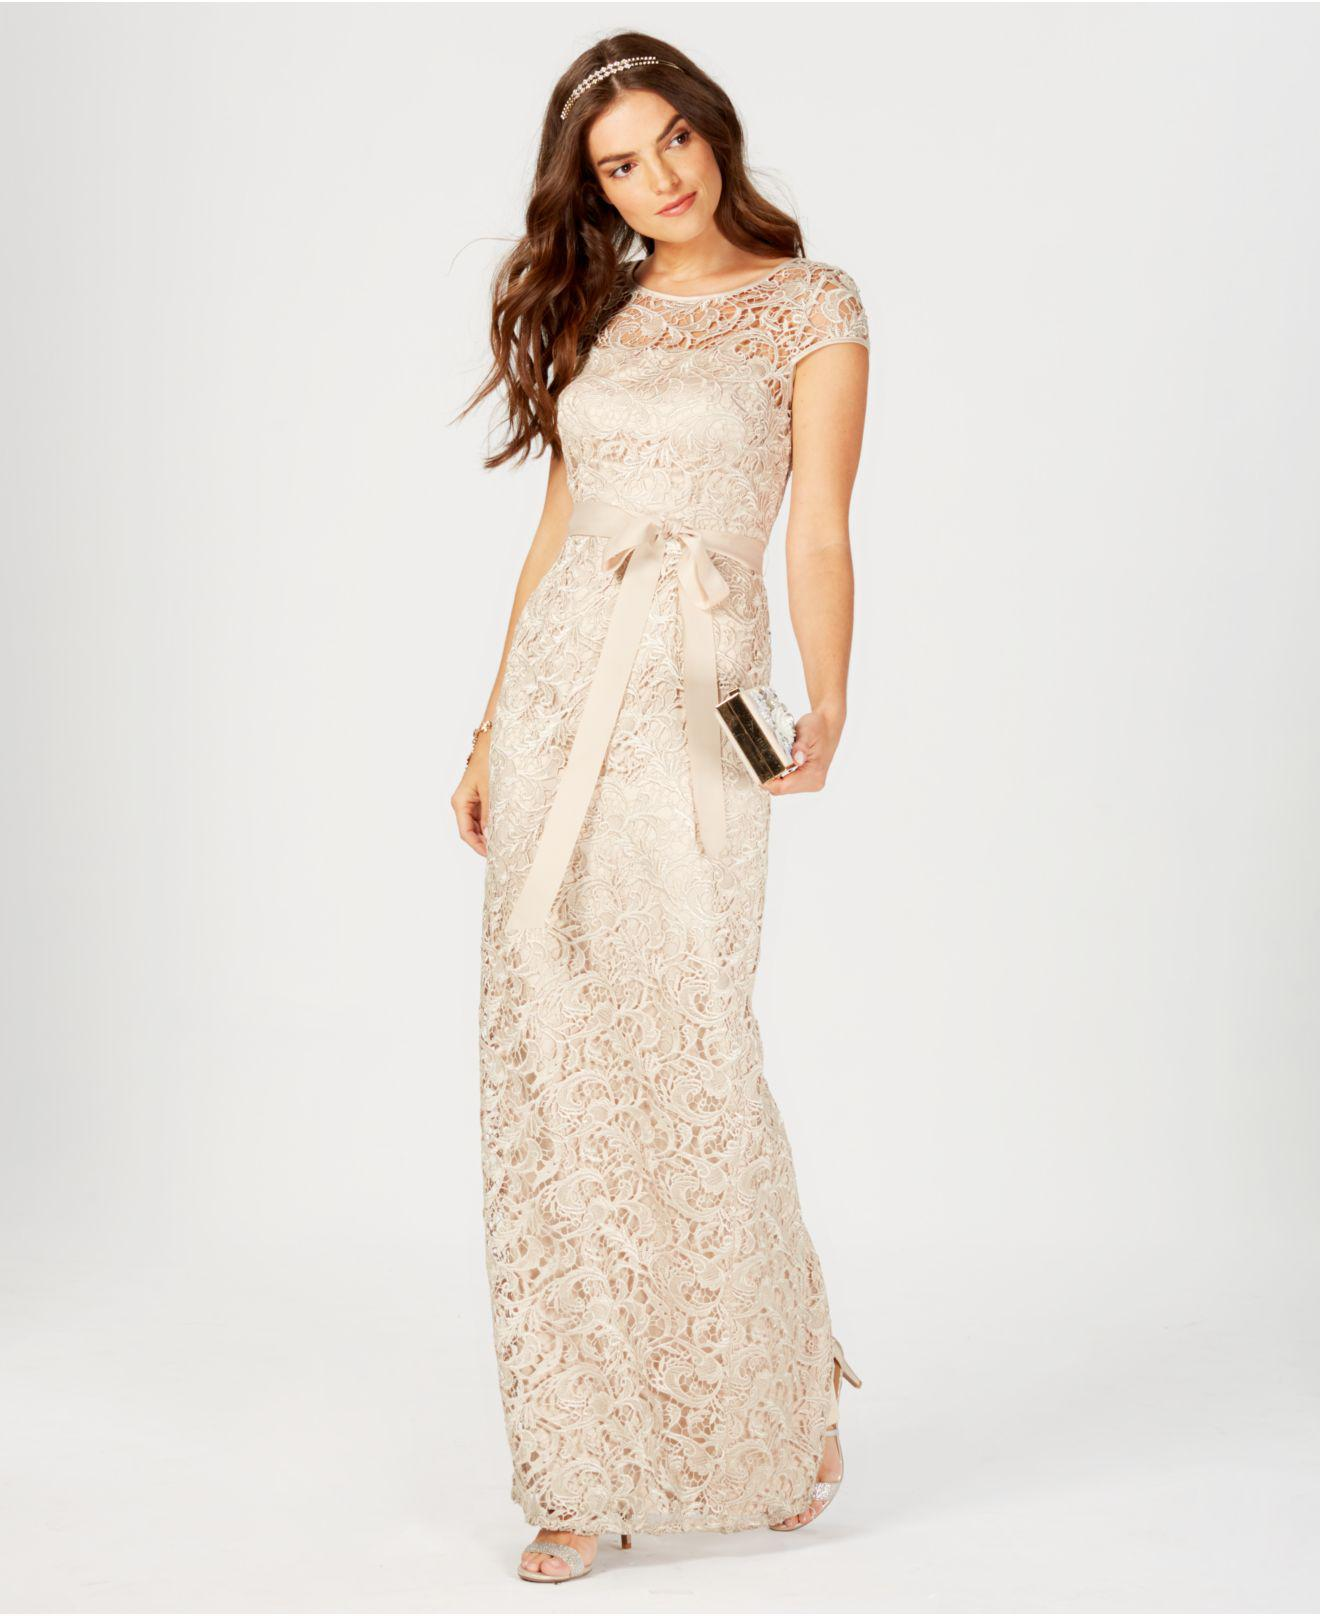 5fdfb6f67d159 Lyst - Adrianna Papell Lace Cap-Sleeve Gown in Natural